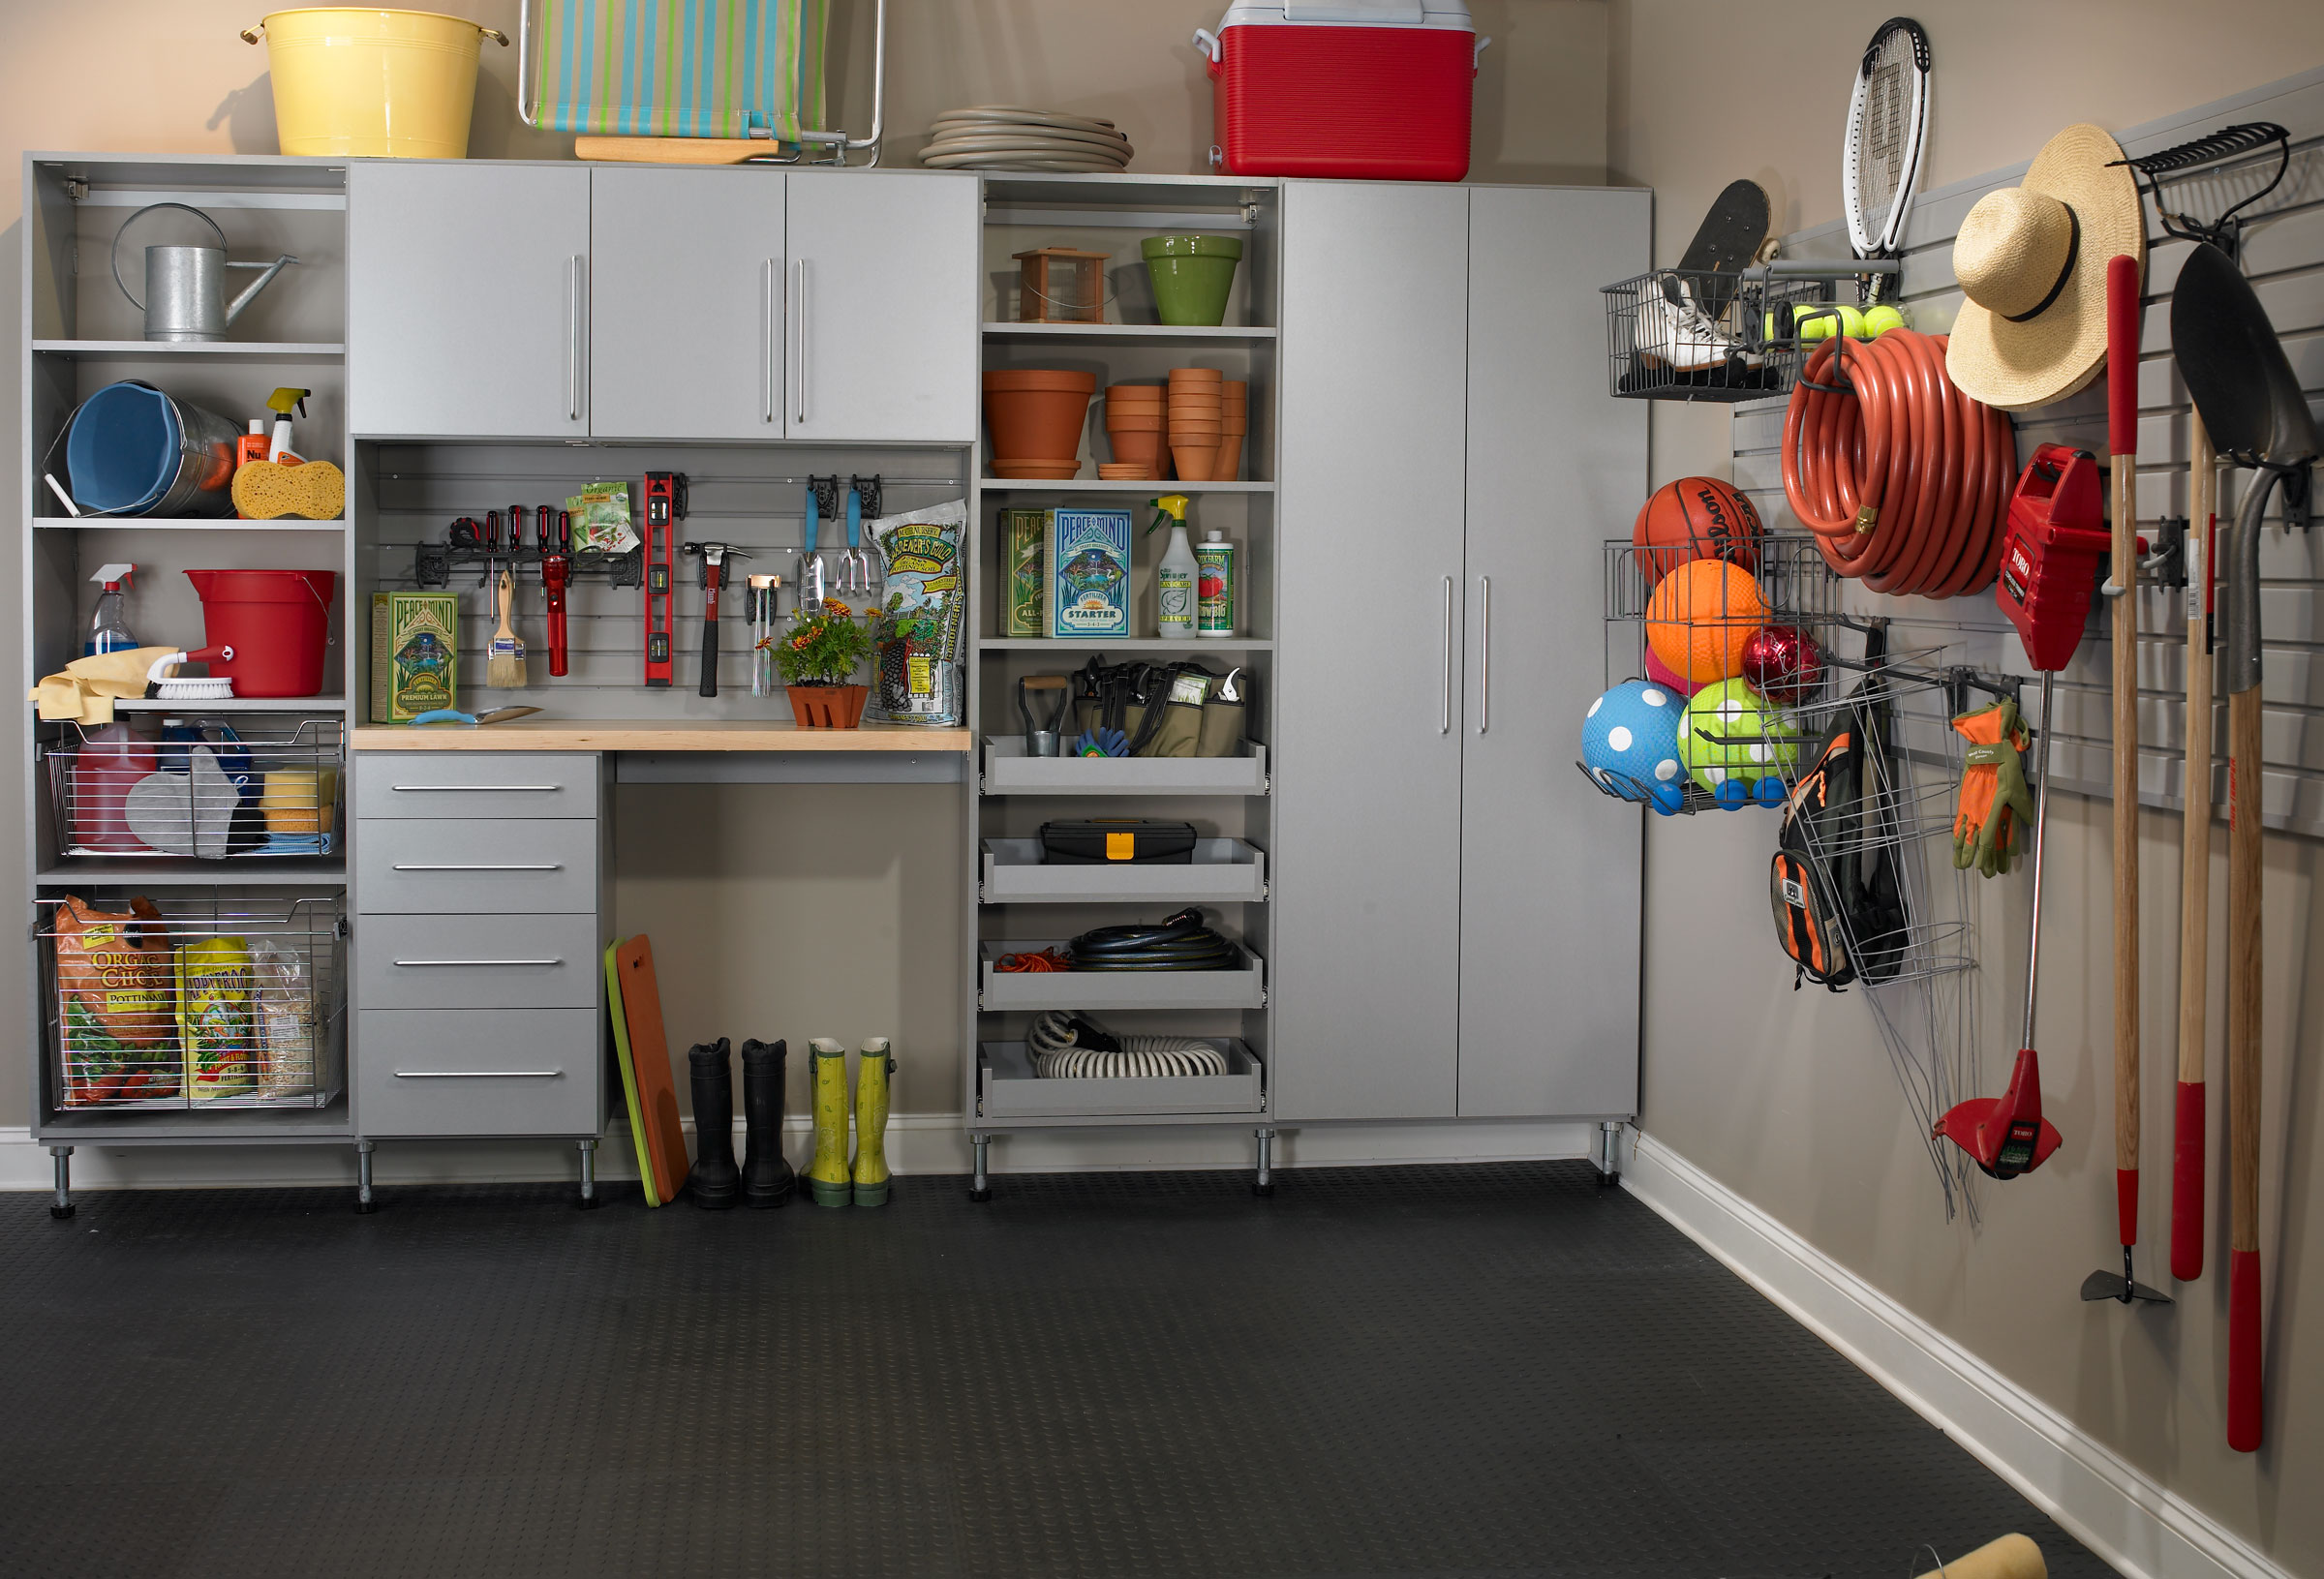 Sellers- Organize Your Cluttered Garage in 5 Simple Steps